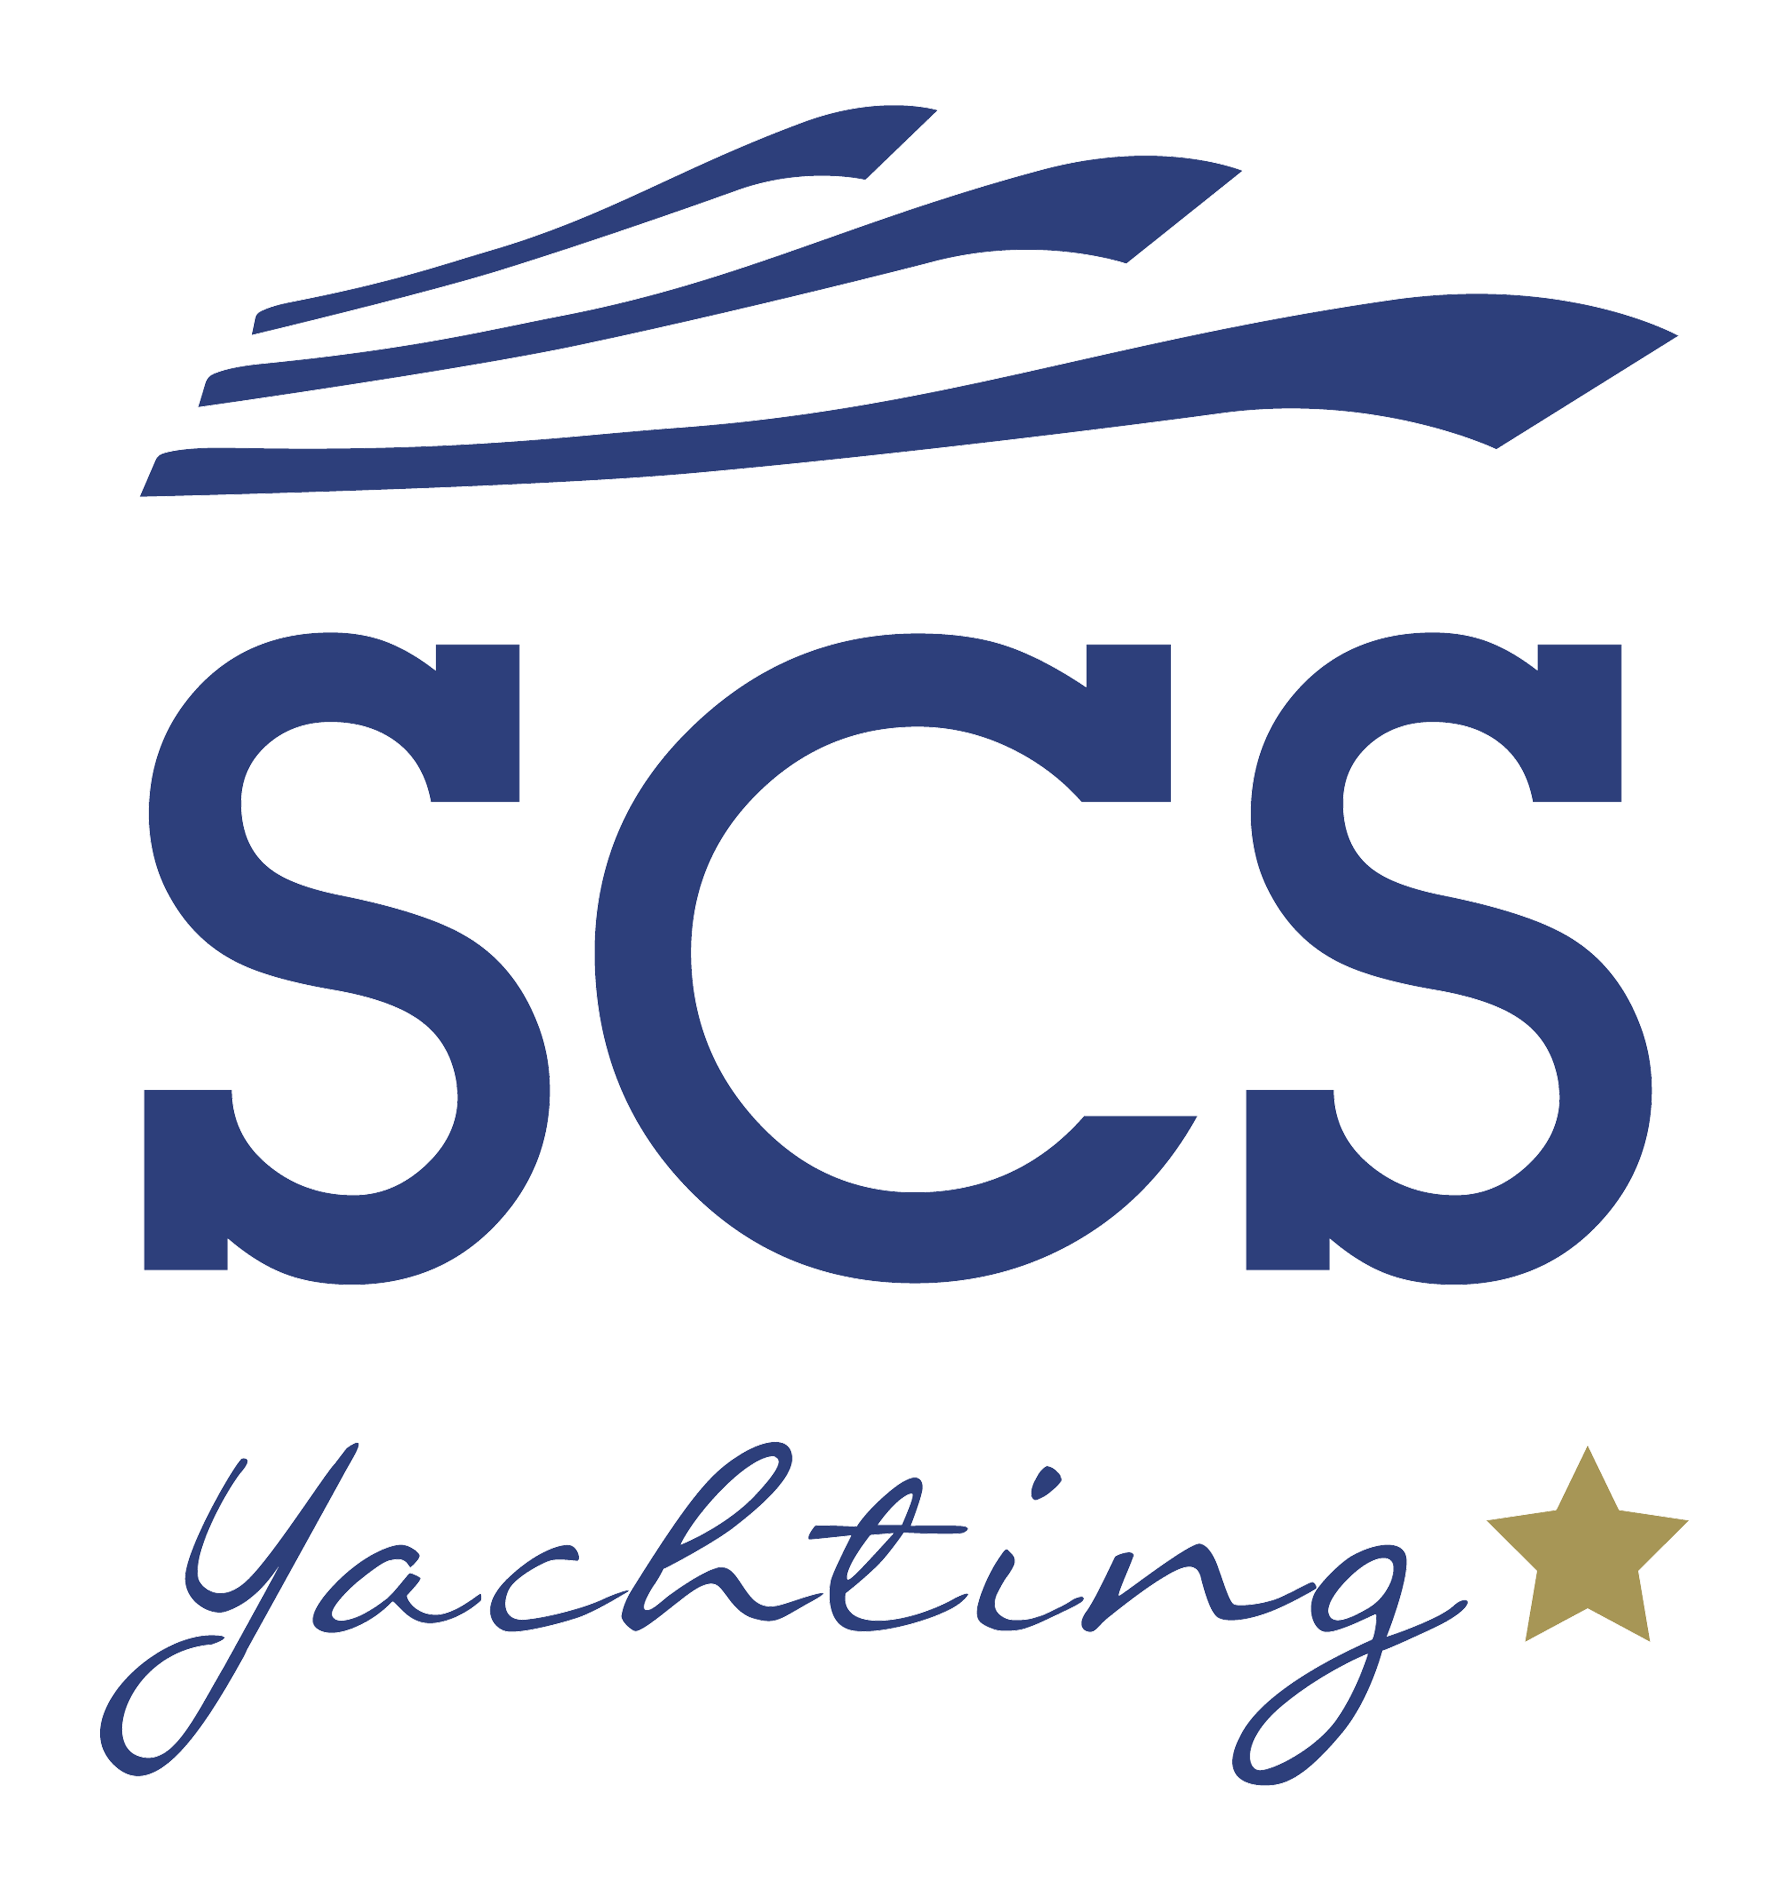 SCS Yachting